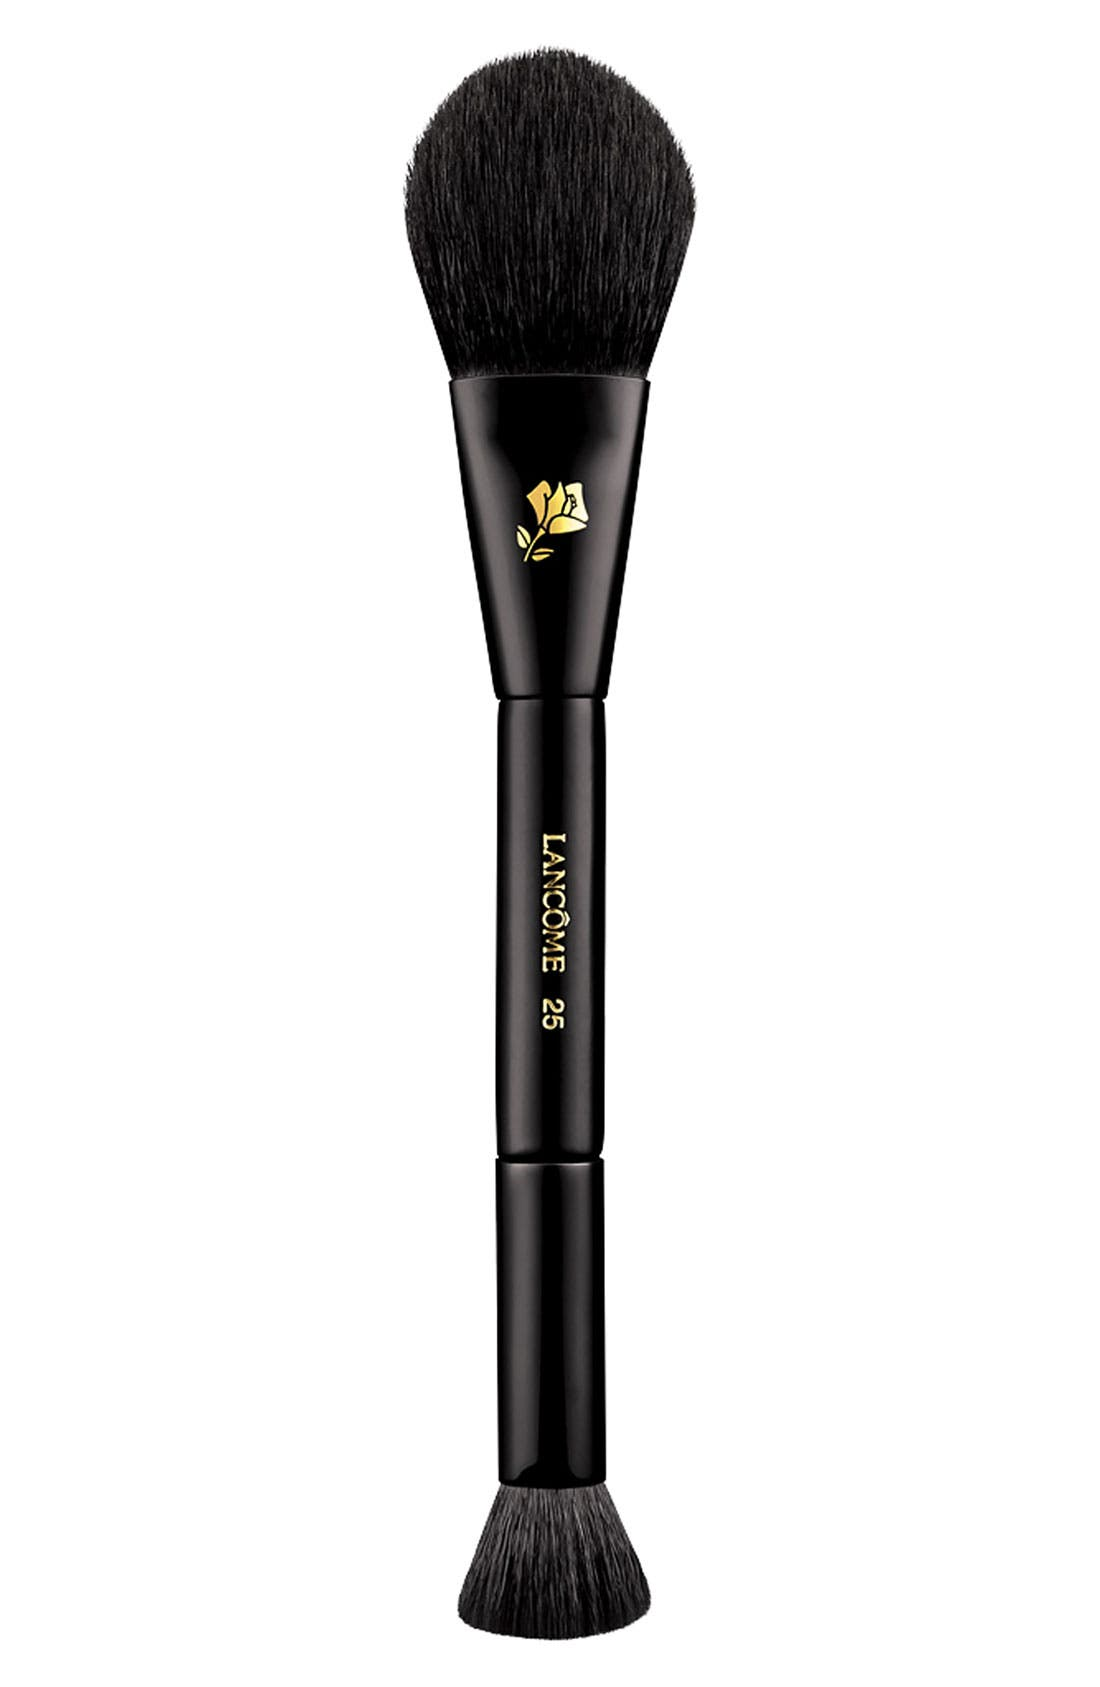 Dual-Ended Cheek & Contour Brush,                             Main thumbnail 1, color,                             NO COLOR